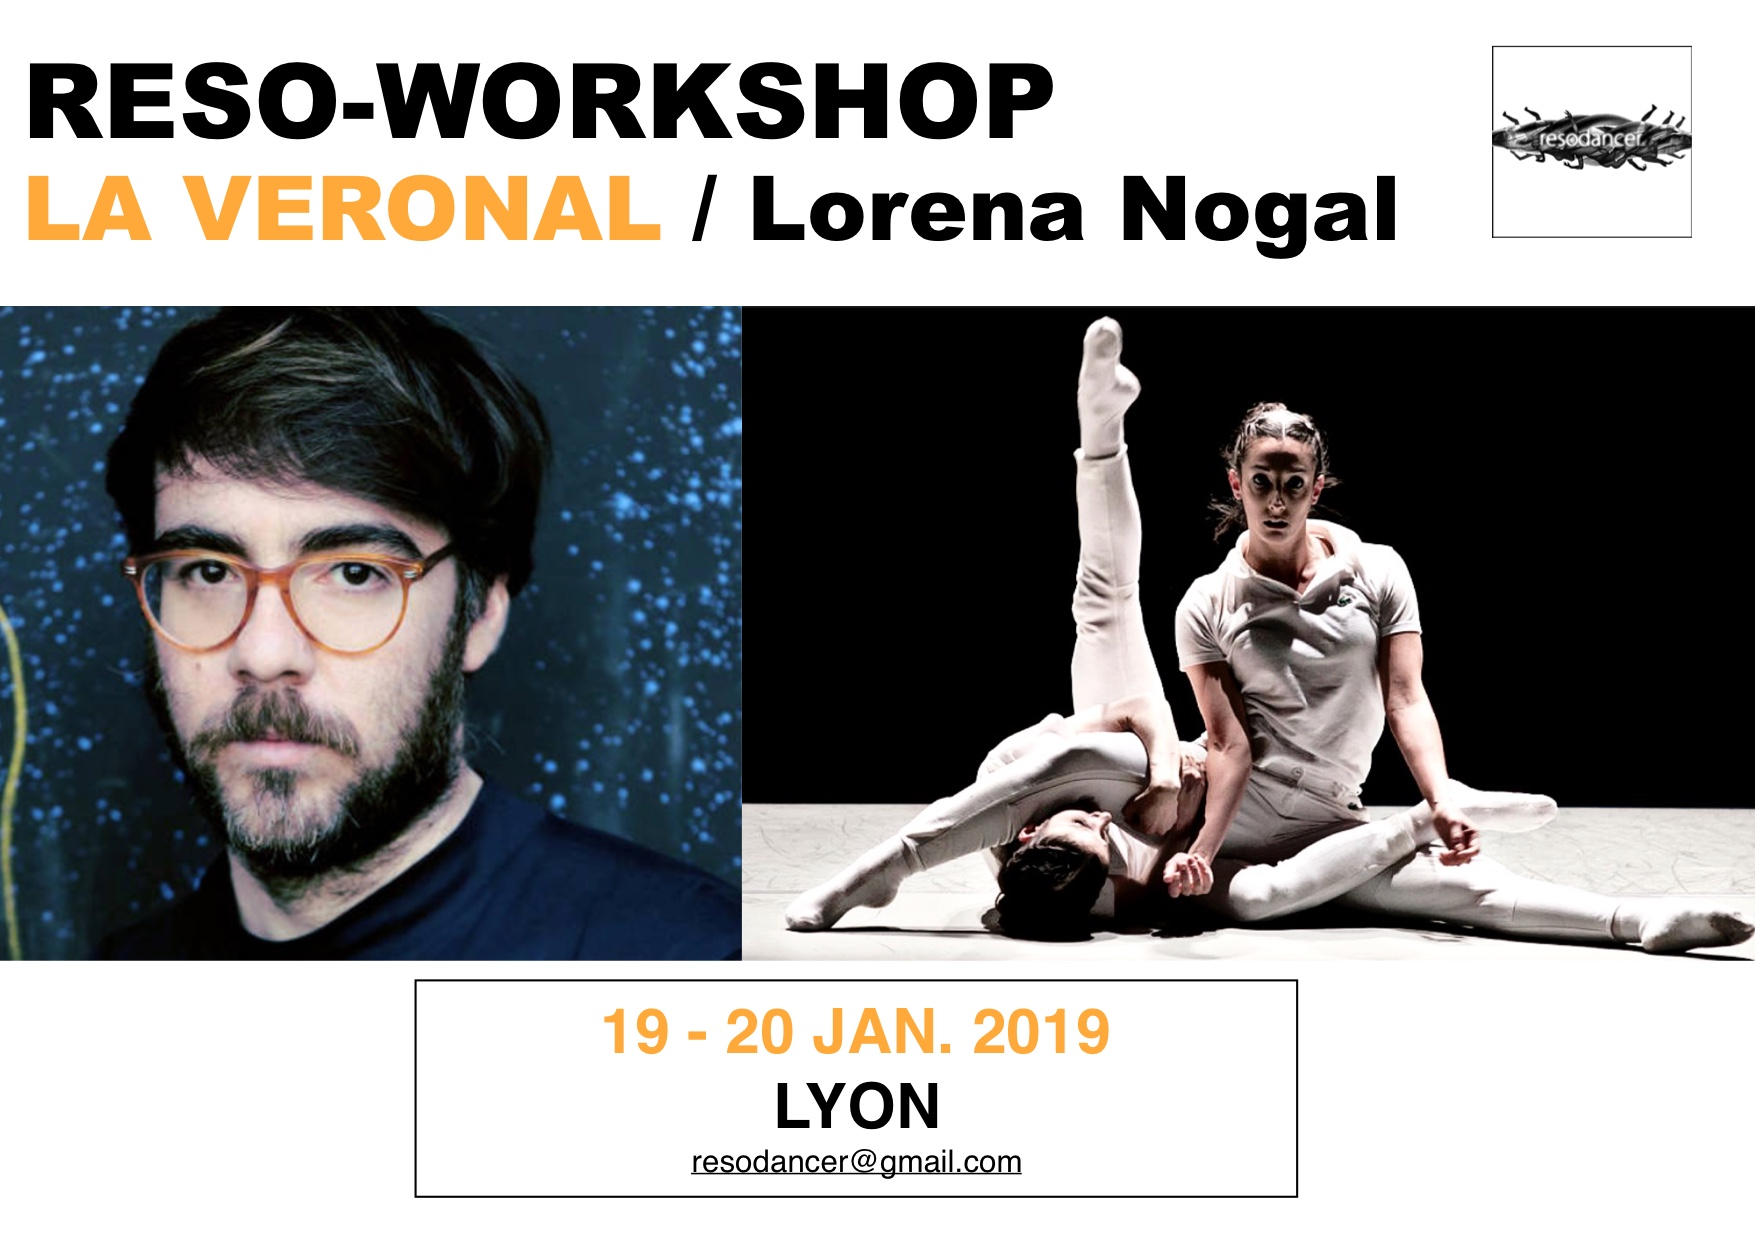 Reso-Workshop La Veronal